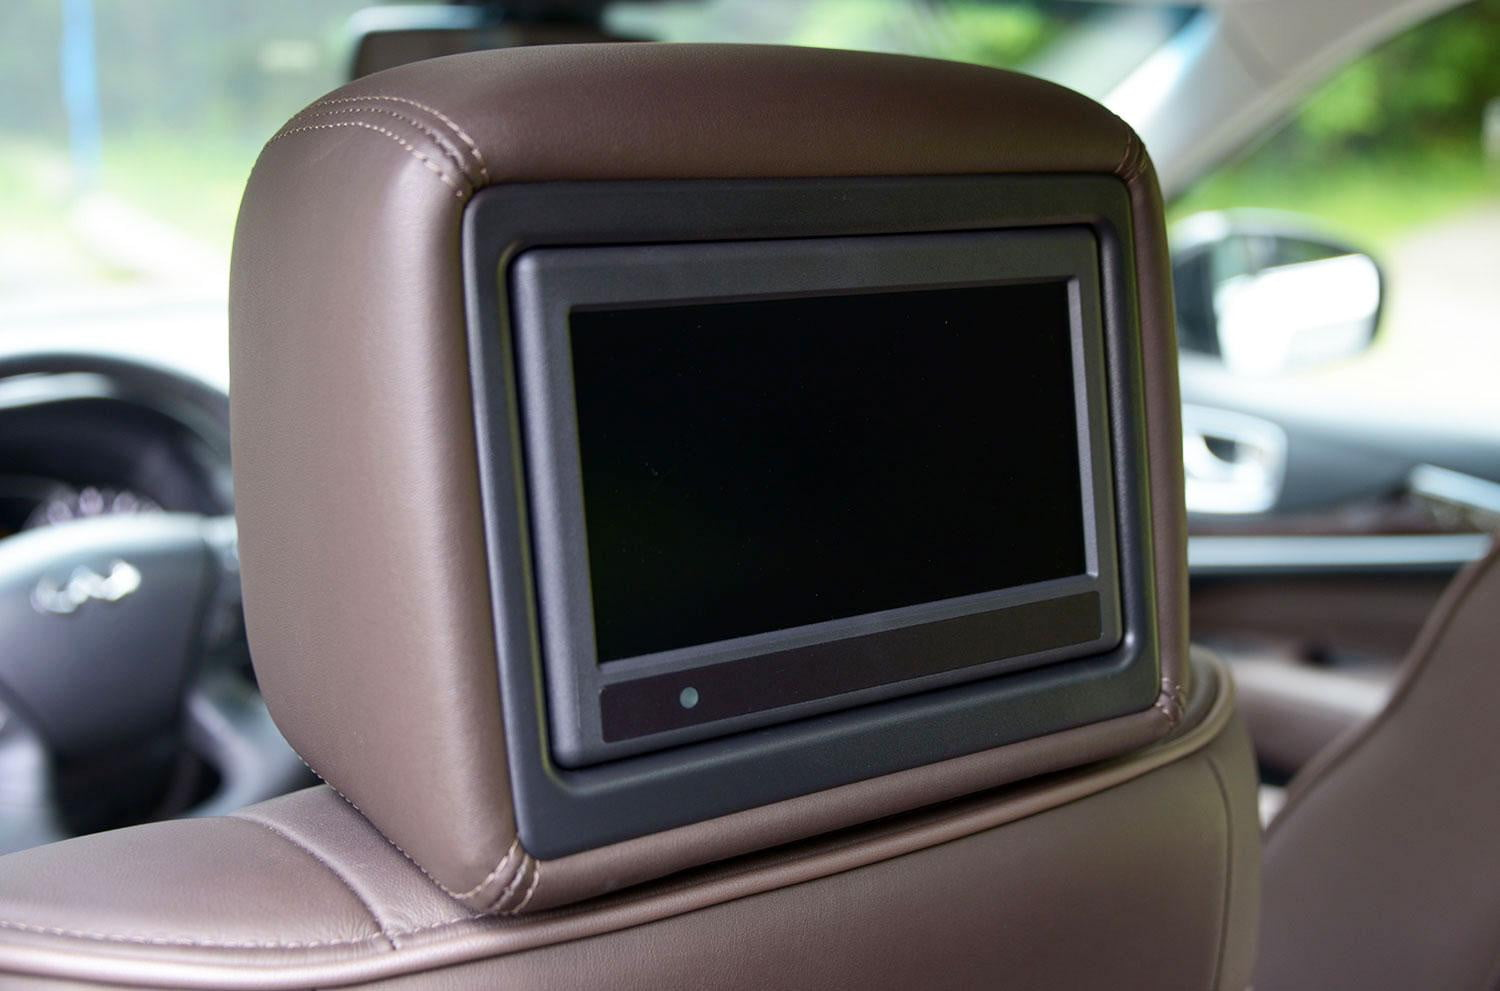 2013 infiniti jx35 digital trends 2013 infinity jx35 interior tech rear entertainment system vanachro Image collections